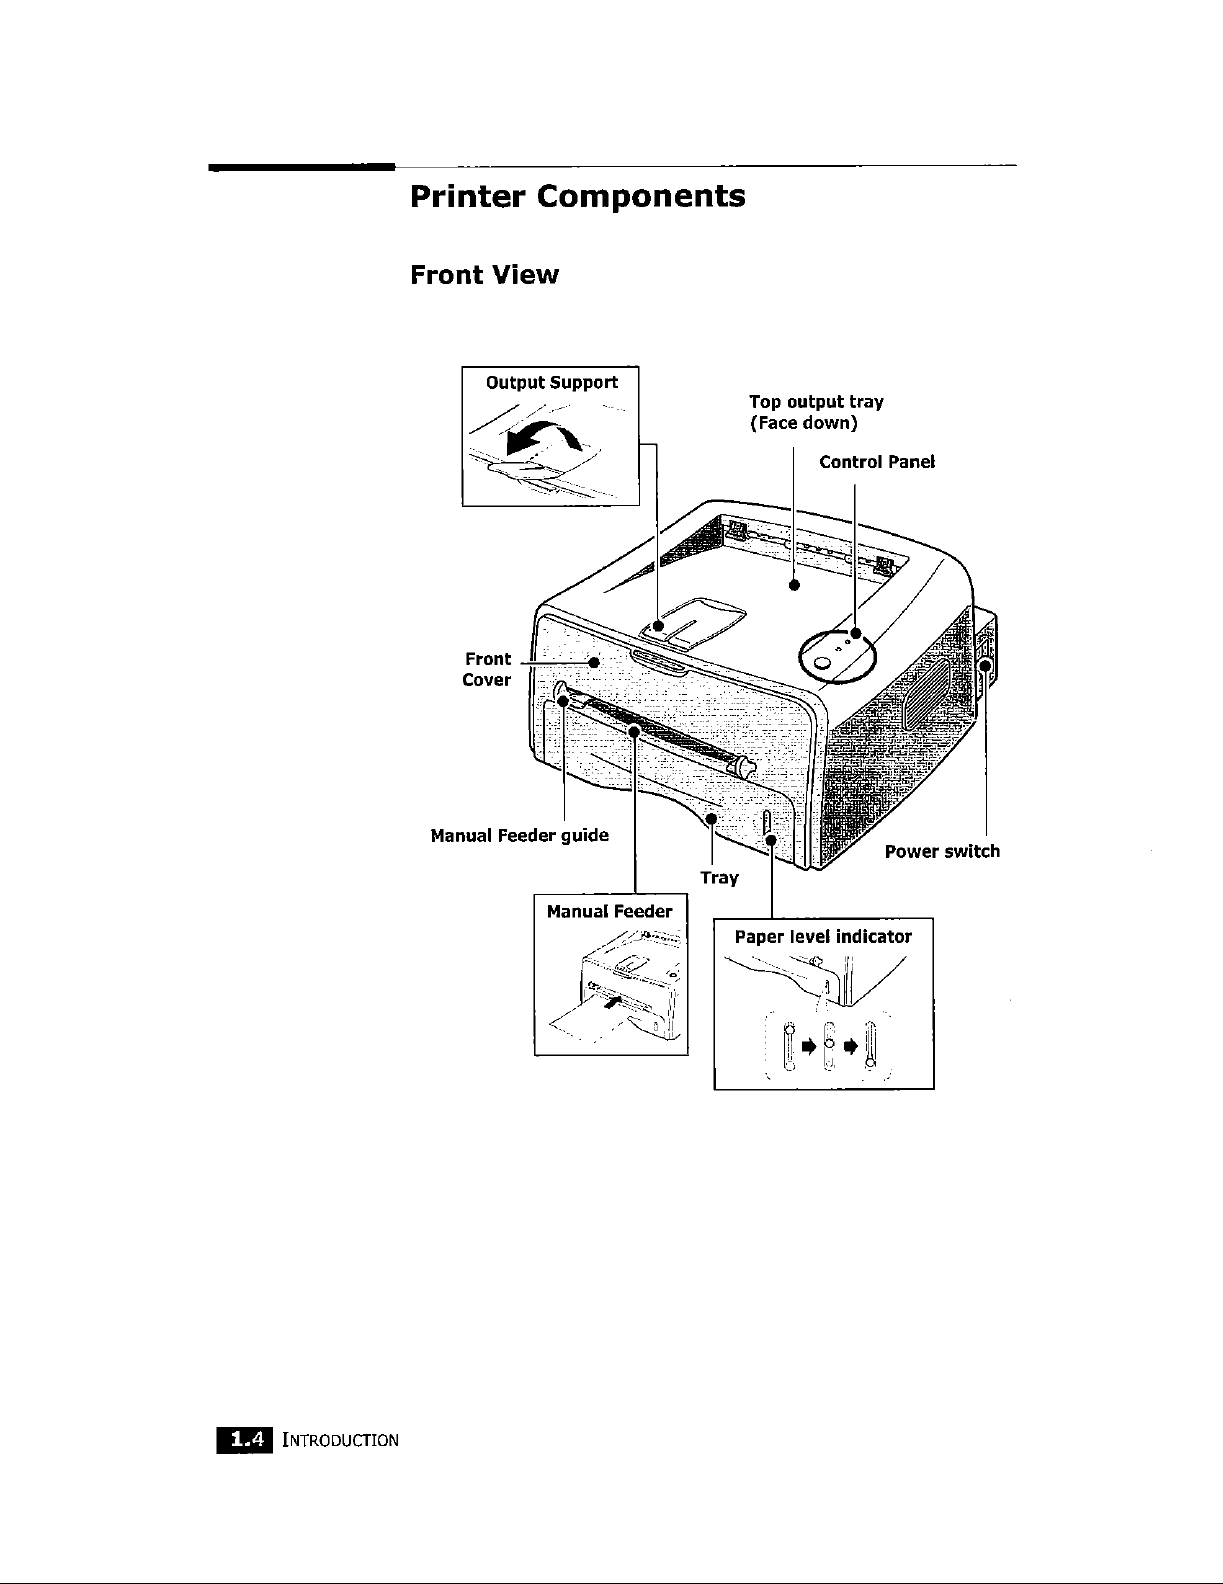 Samsung Electronics Co ML1520 Laser Beam Printer User Manual